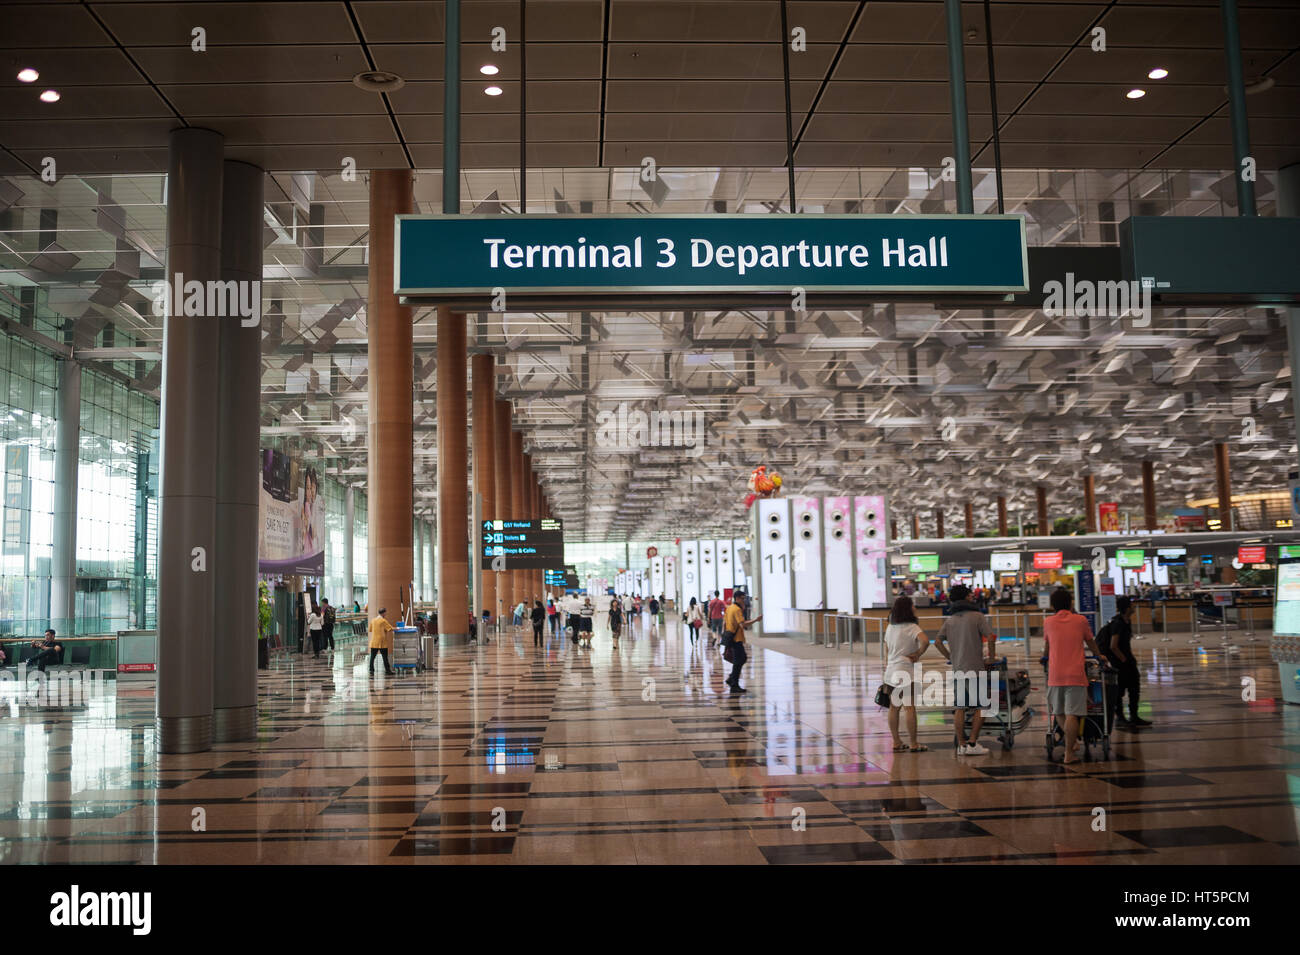 16.01.2017, Singapore, Republic of Singapore, Asia - A view of the departure hall of Terminal 3 at Singapore's - Stock Image